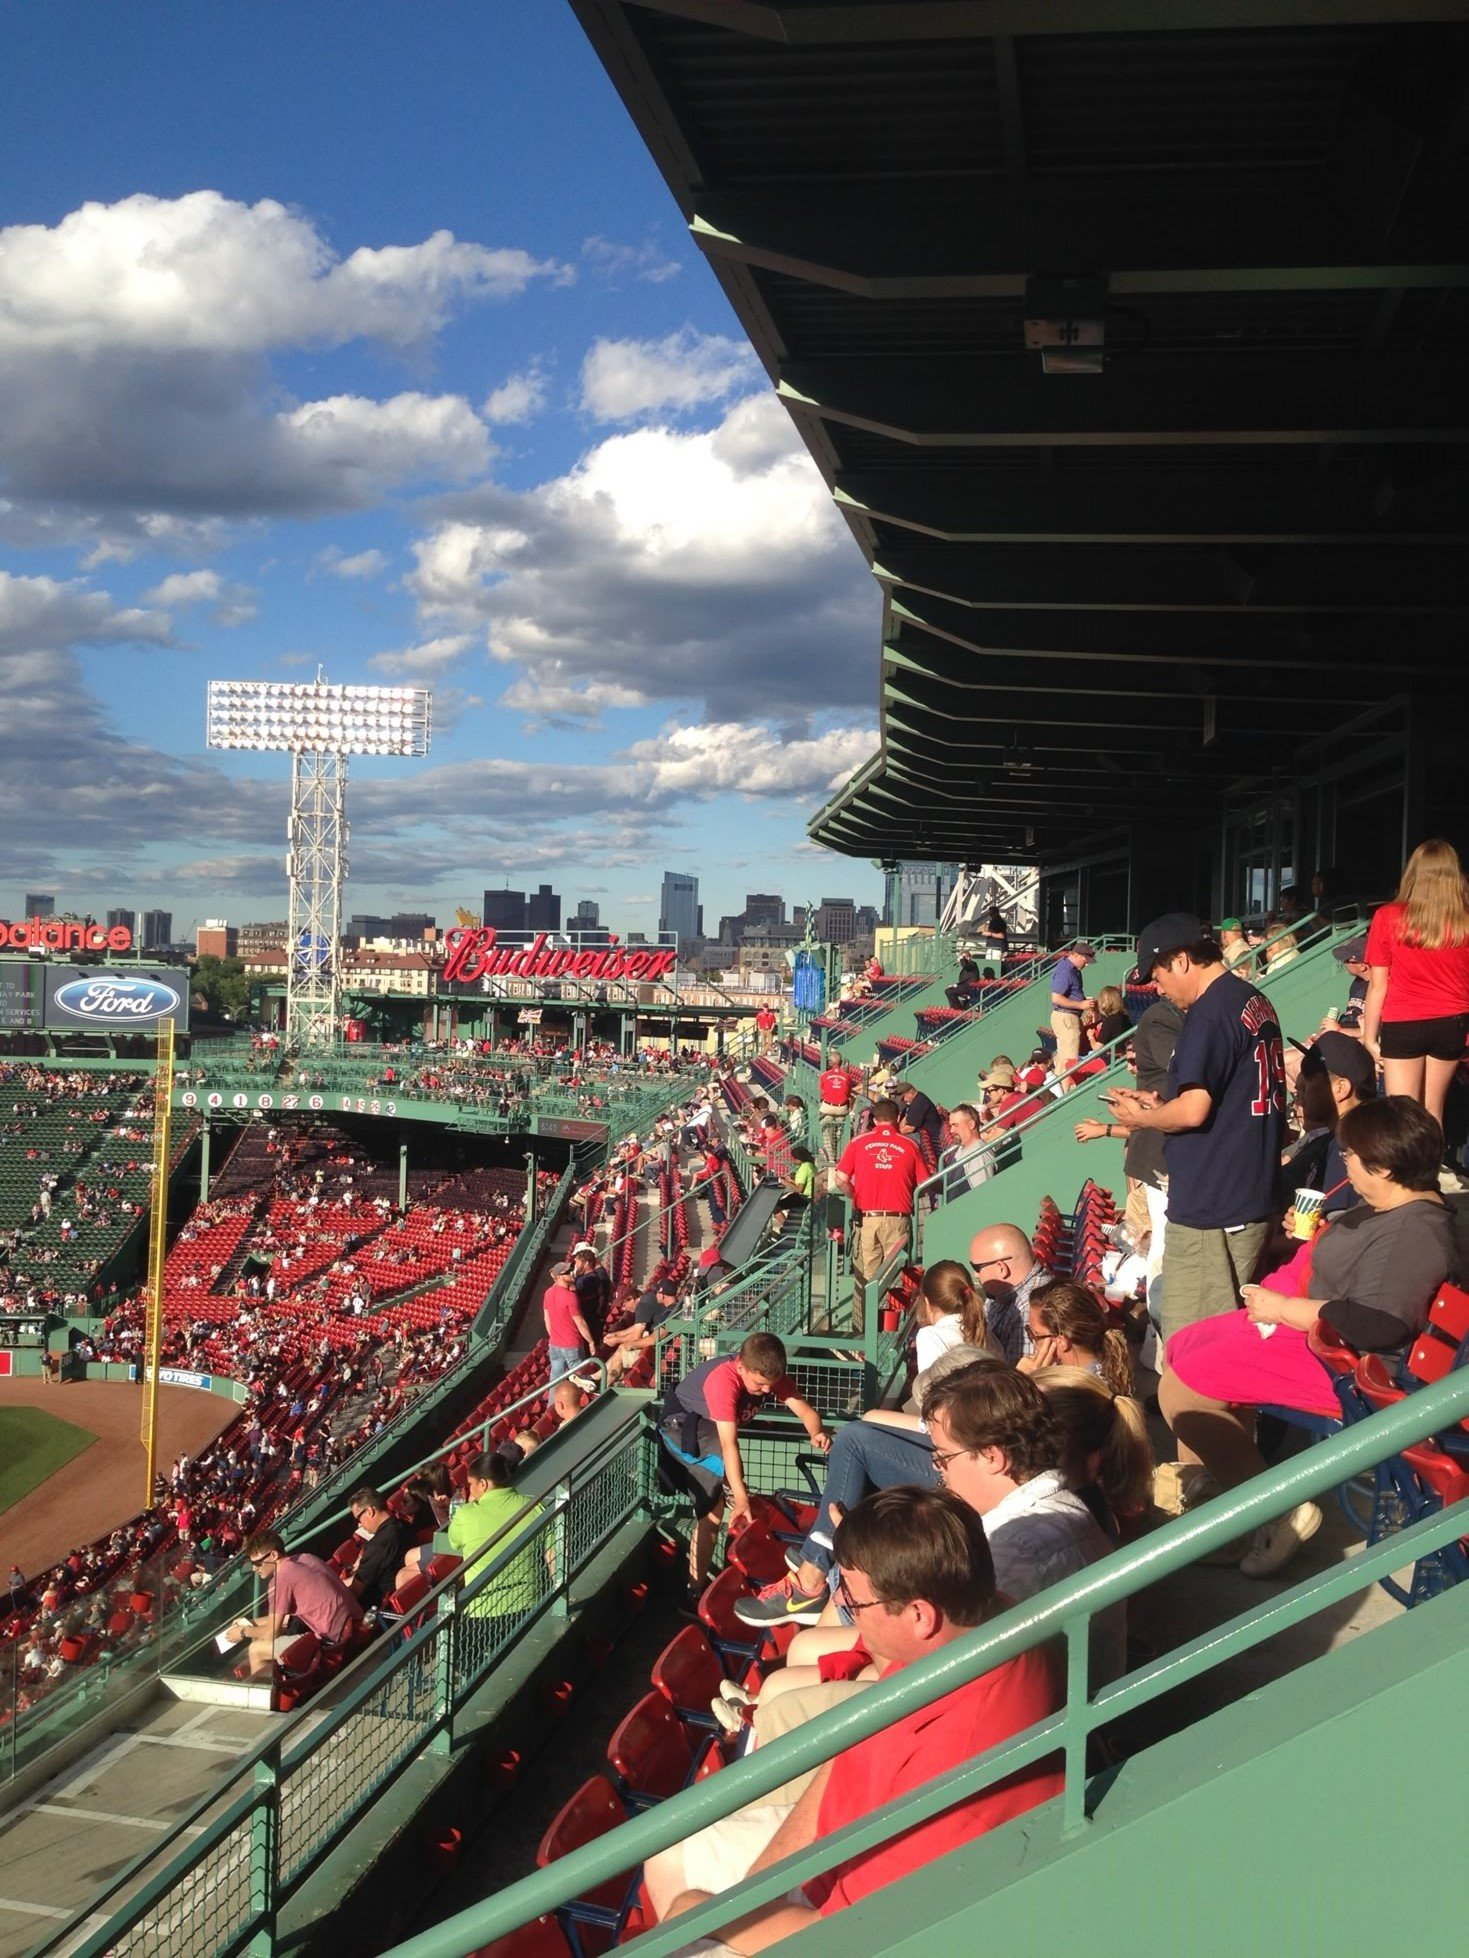 boston red sox seating guide - fenway park - rateyourseats